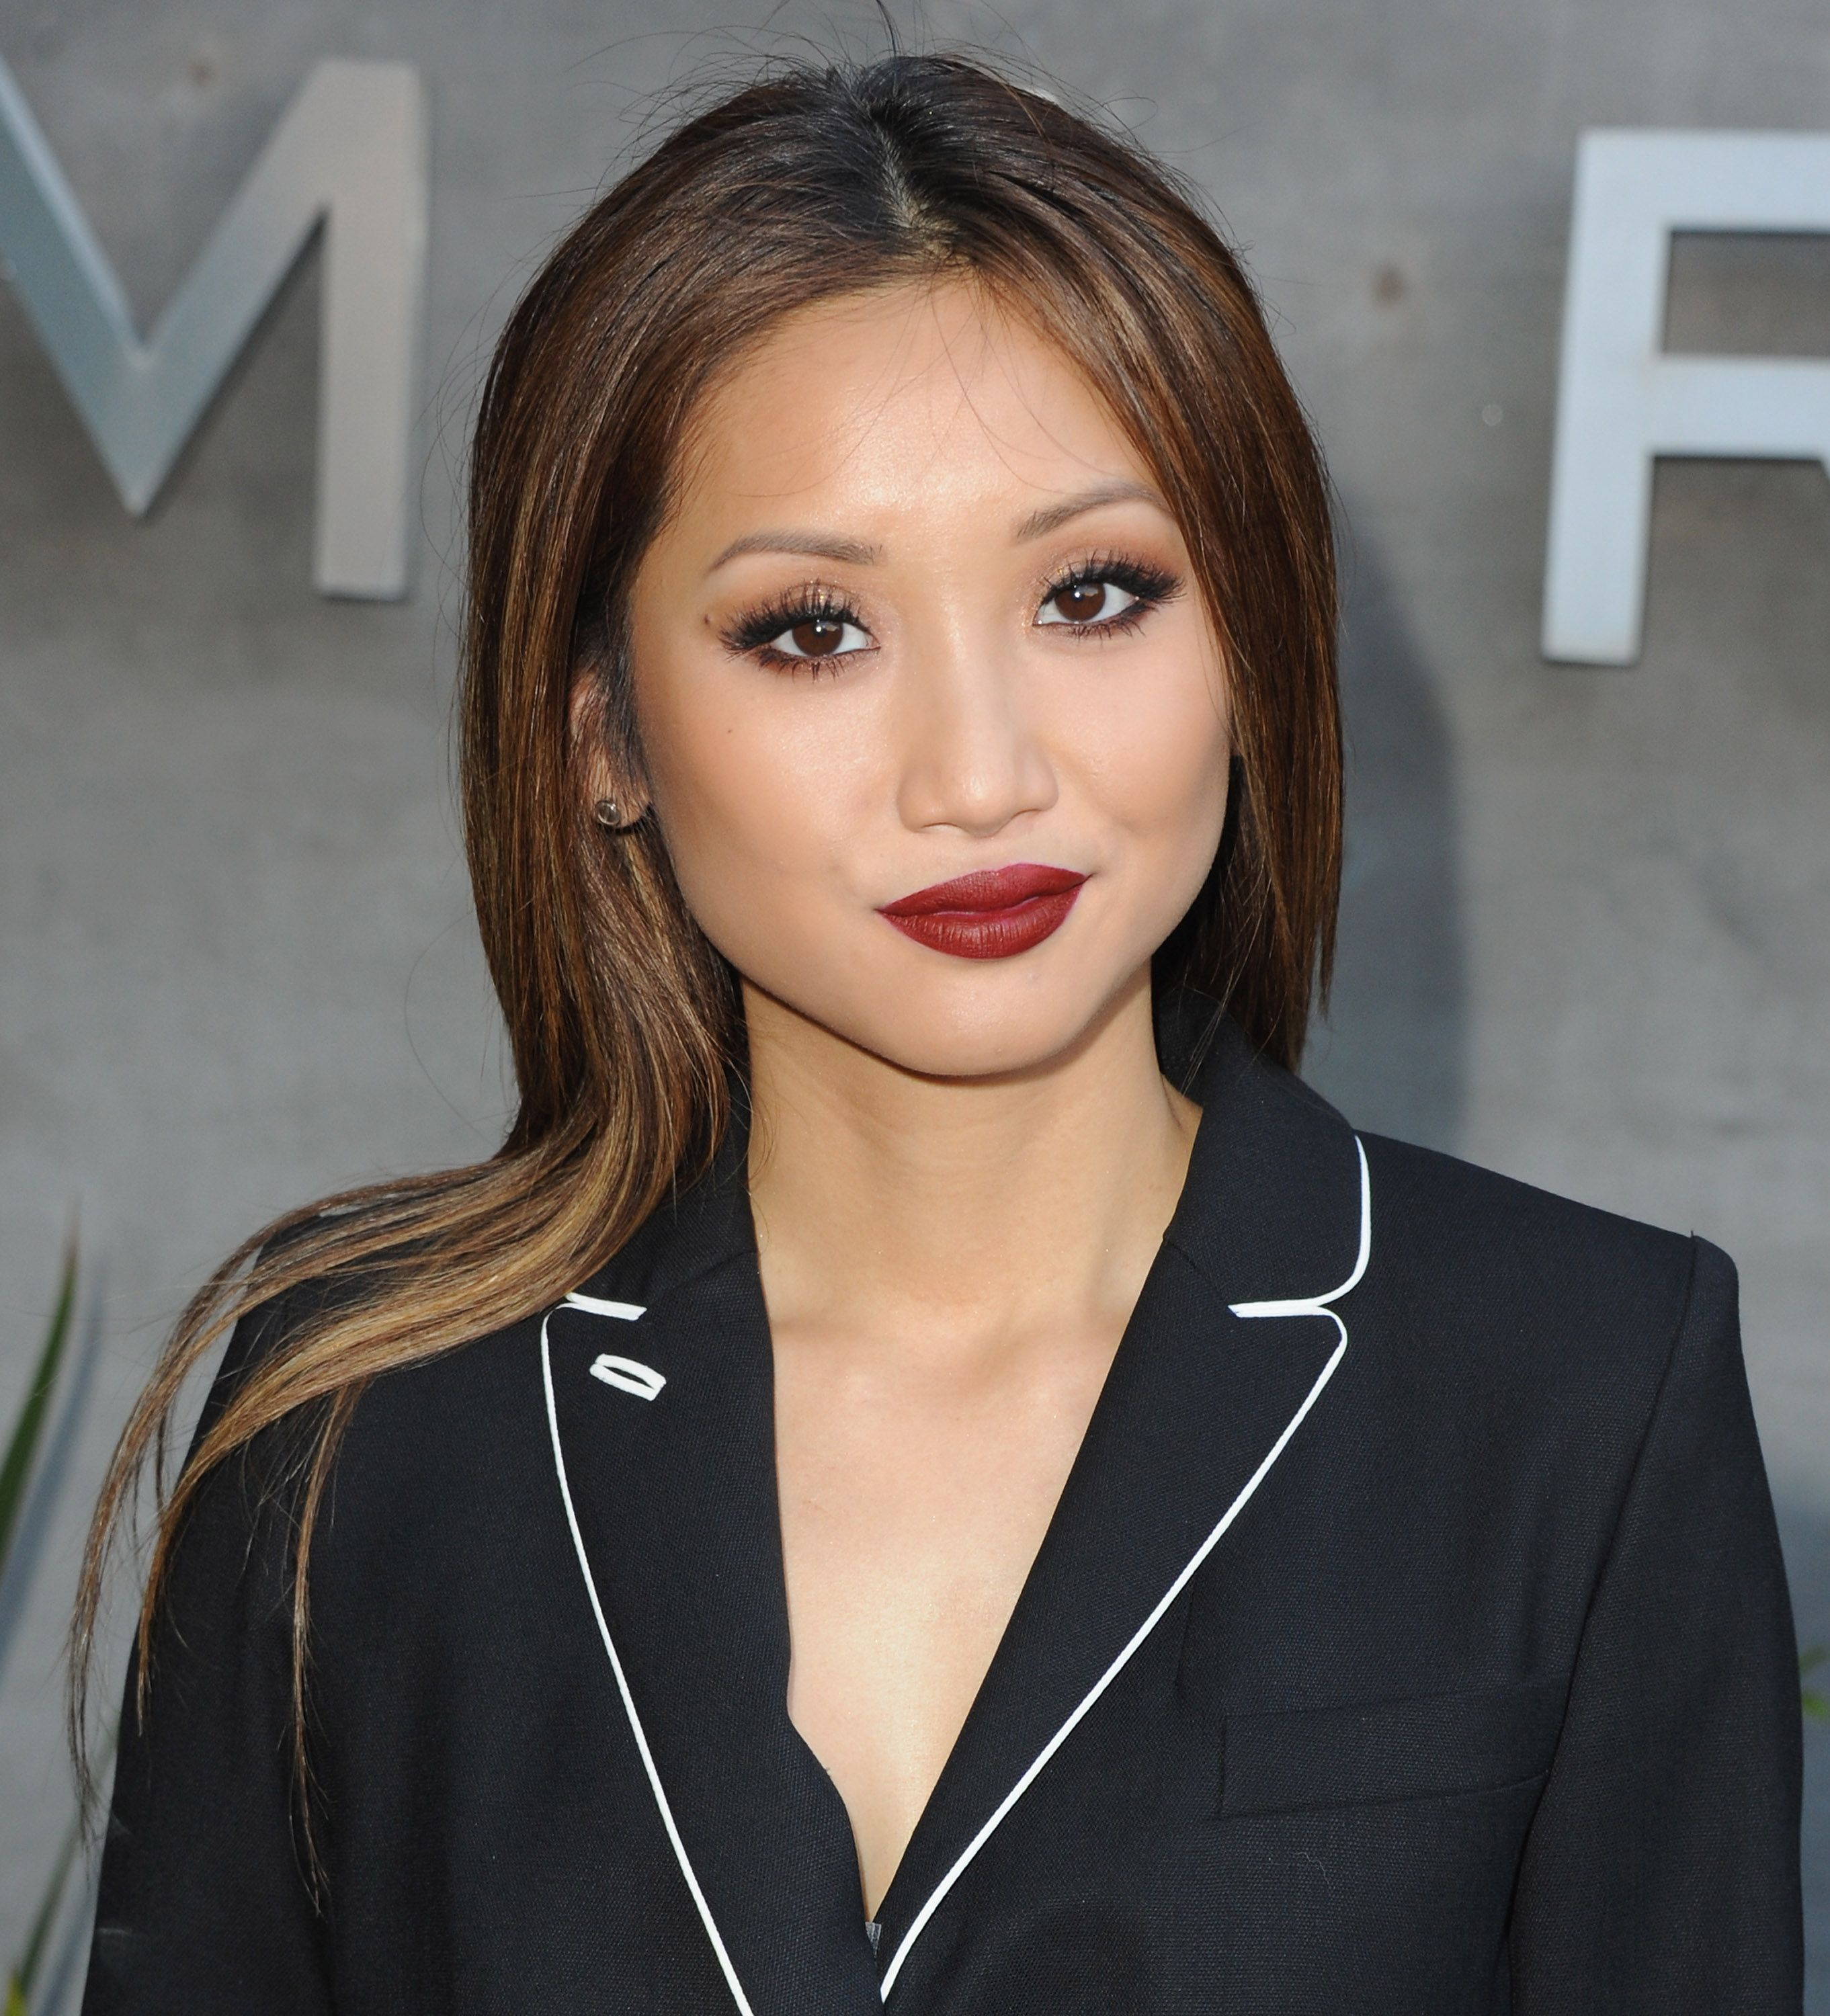 brenda song dressbrenda song and trace cyrus, brenda song insta, brenda song and andrew garfield, brenda song photo, brenda song imdb, brenda song shorts, brenda song dress, brenda song filmy, brenda song 2015, brenda song disney, brenda song chinese, brenda song short hair, brenda song instagram, brenda song 2016, brenda song wikipedia, brenda song wiki, brenda song korean, brenda song films, brenda song filmography